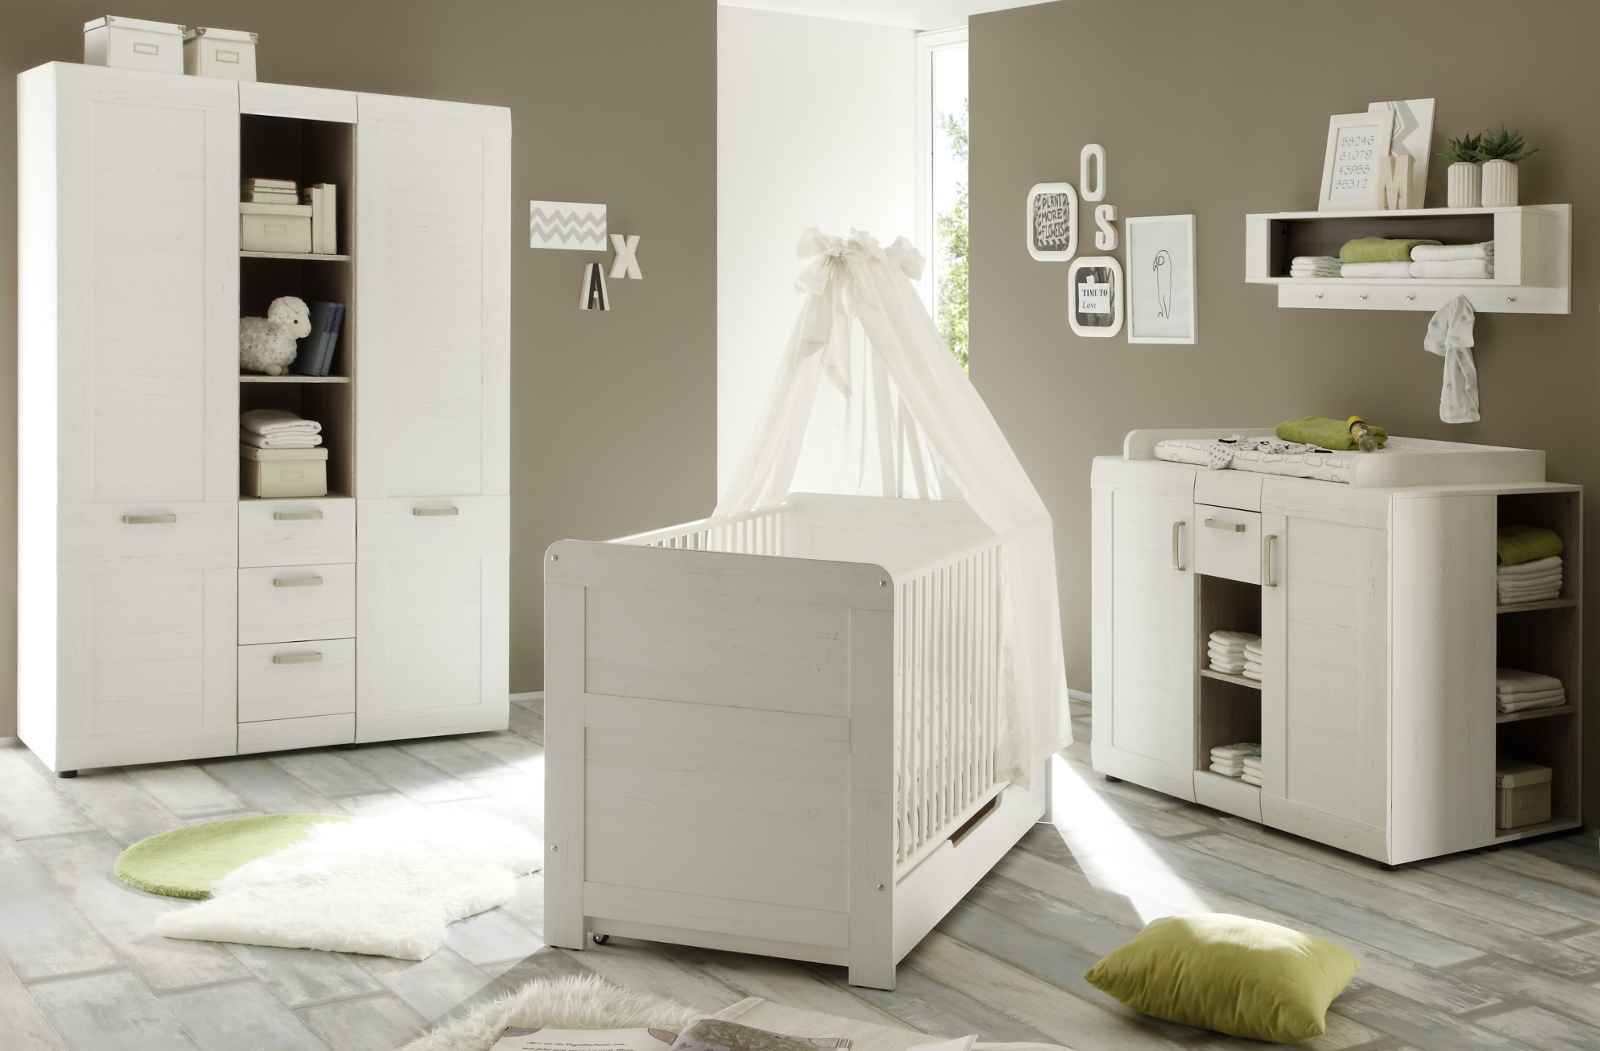 babyzimmer komplett 3 teilig pinie wei struktur. Black Bedroom Furniture Sets. Home Design Ideas